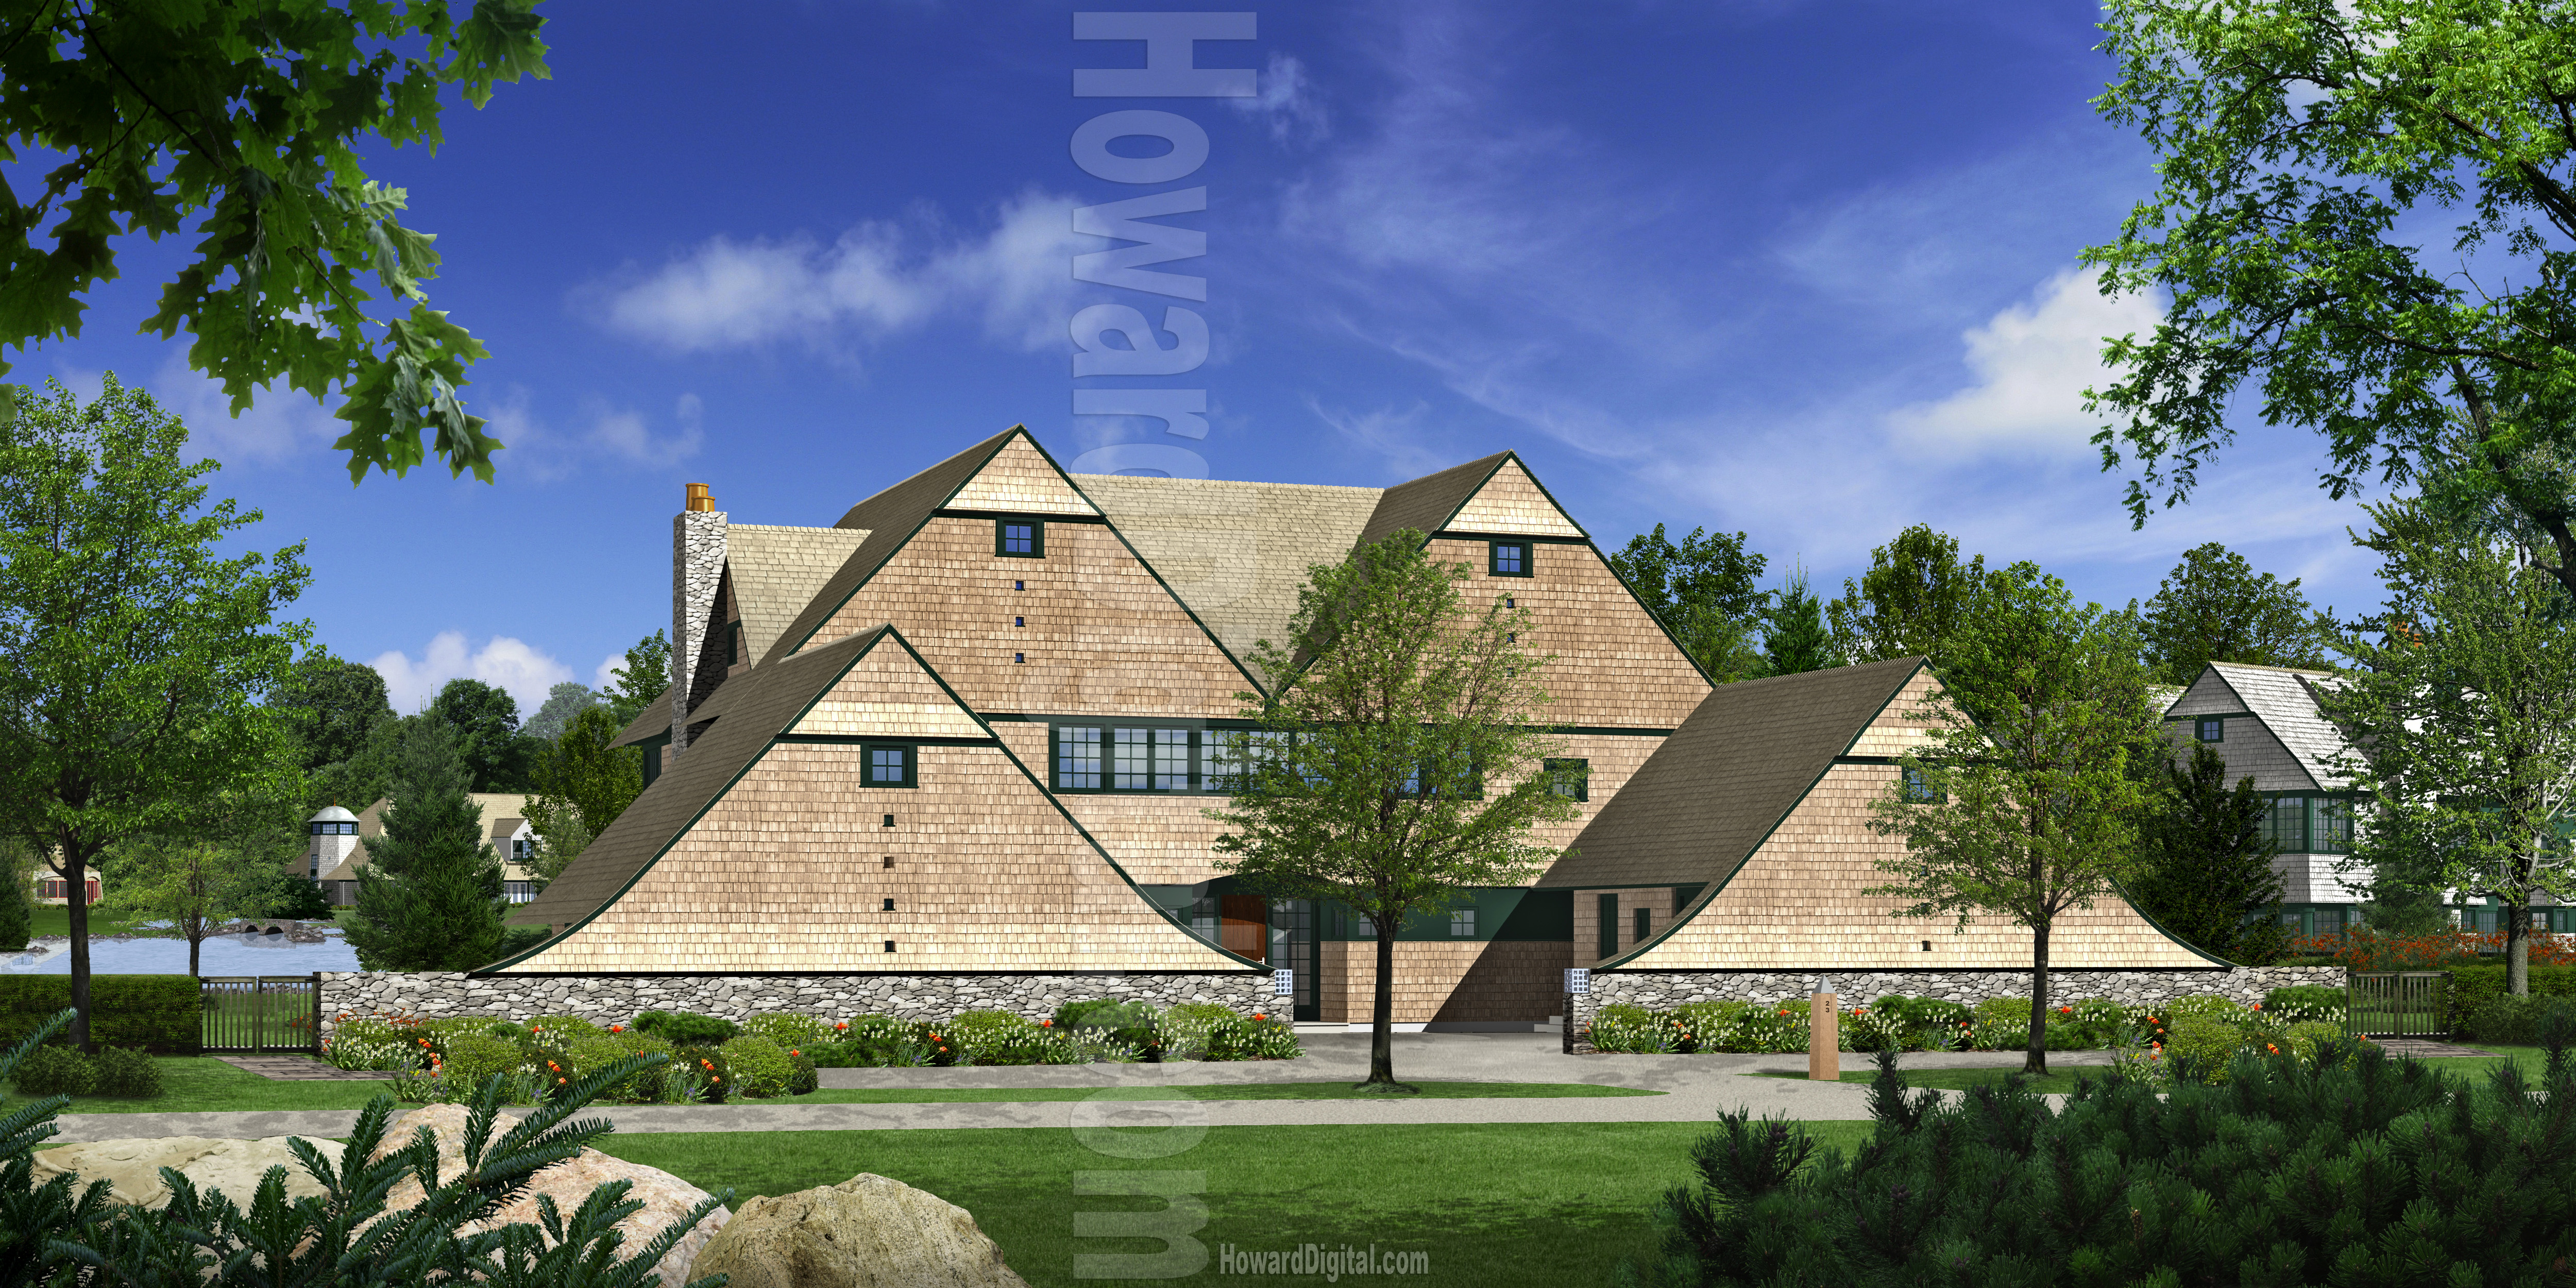 Architectural Rendering Architectural Illustrations By